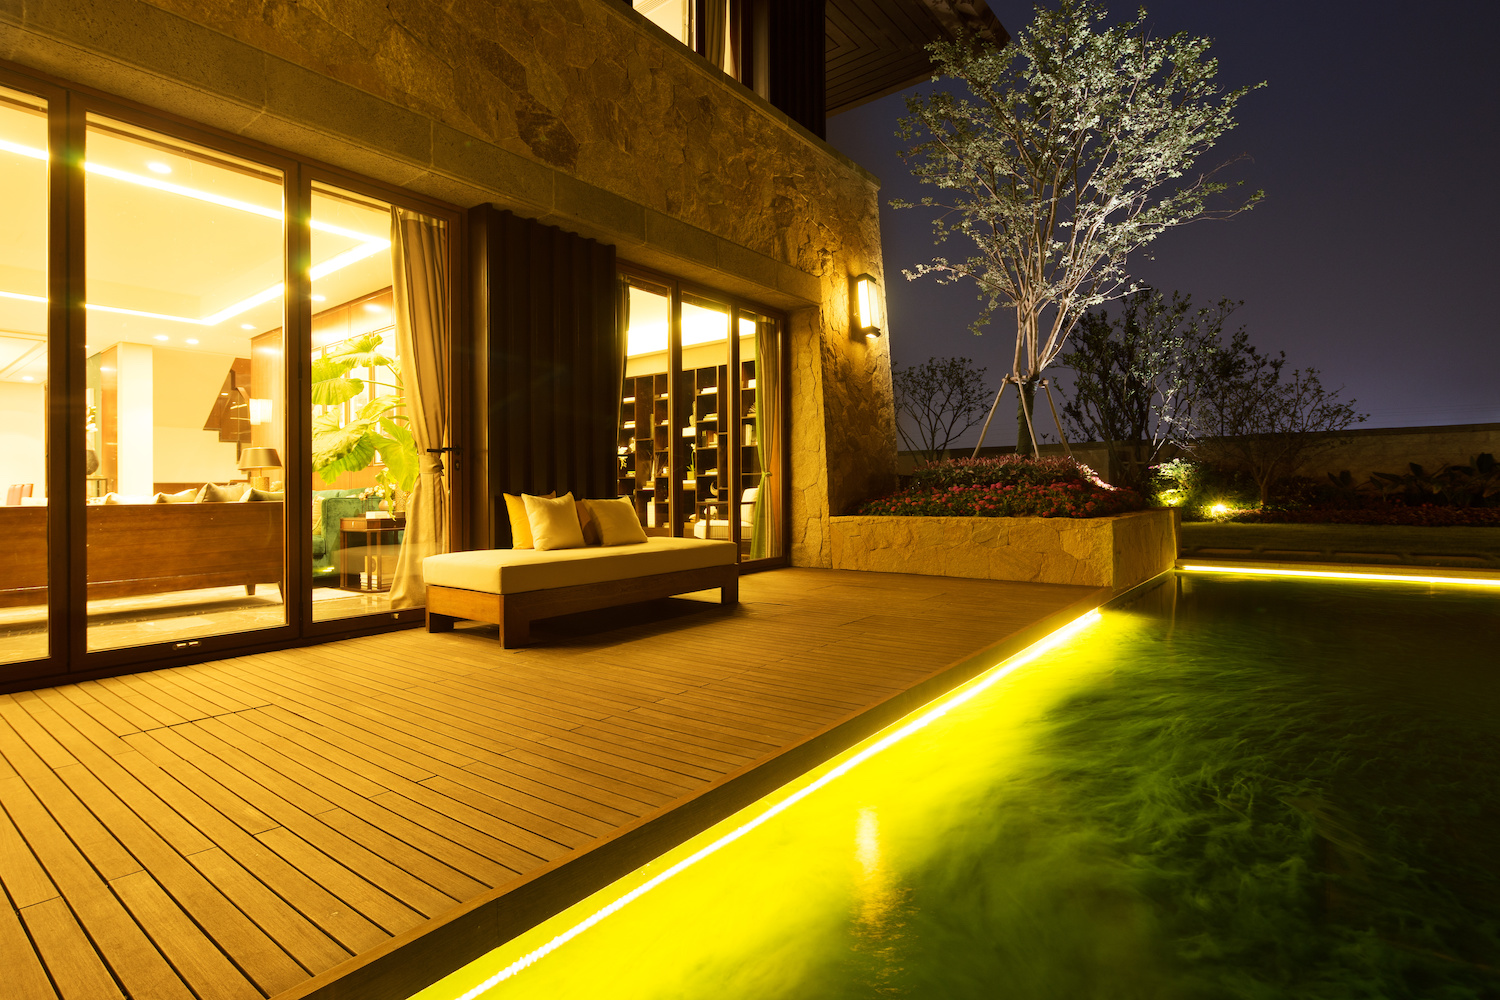 Best outdoor lighting design ideas photos decoration for Exterior lighting design